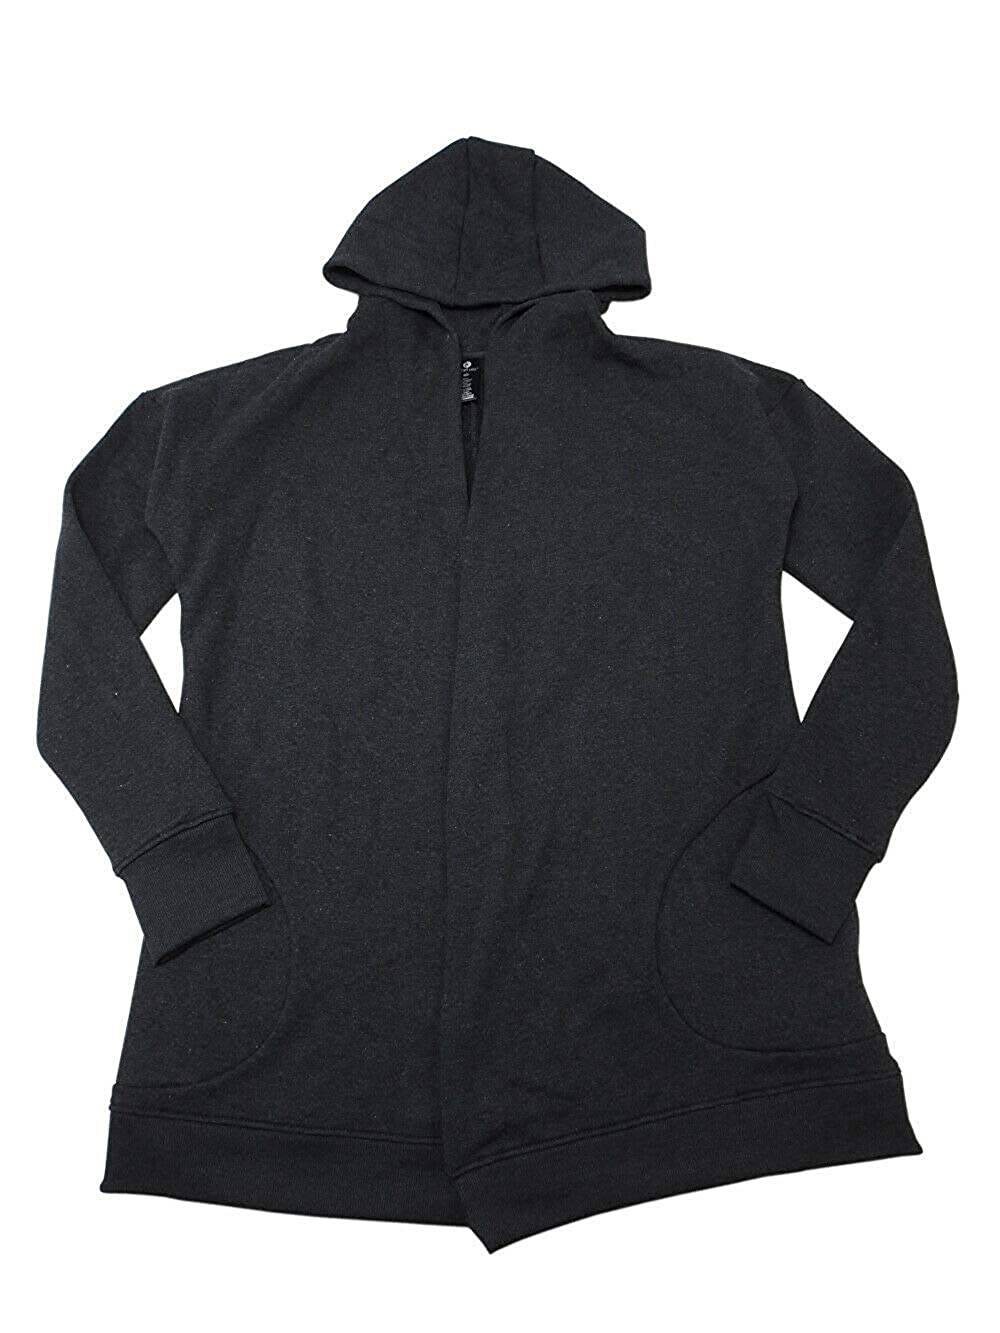 ACTIVE LIFE Women Hoodie Jacket Open Front Cardigan Size Large Heather Charcoal